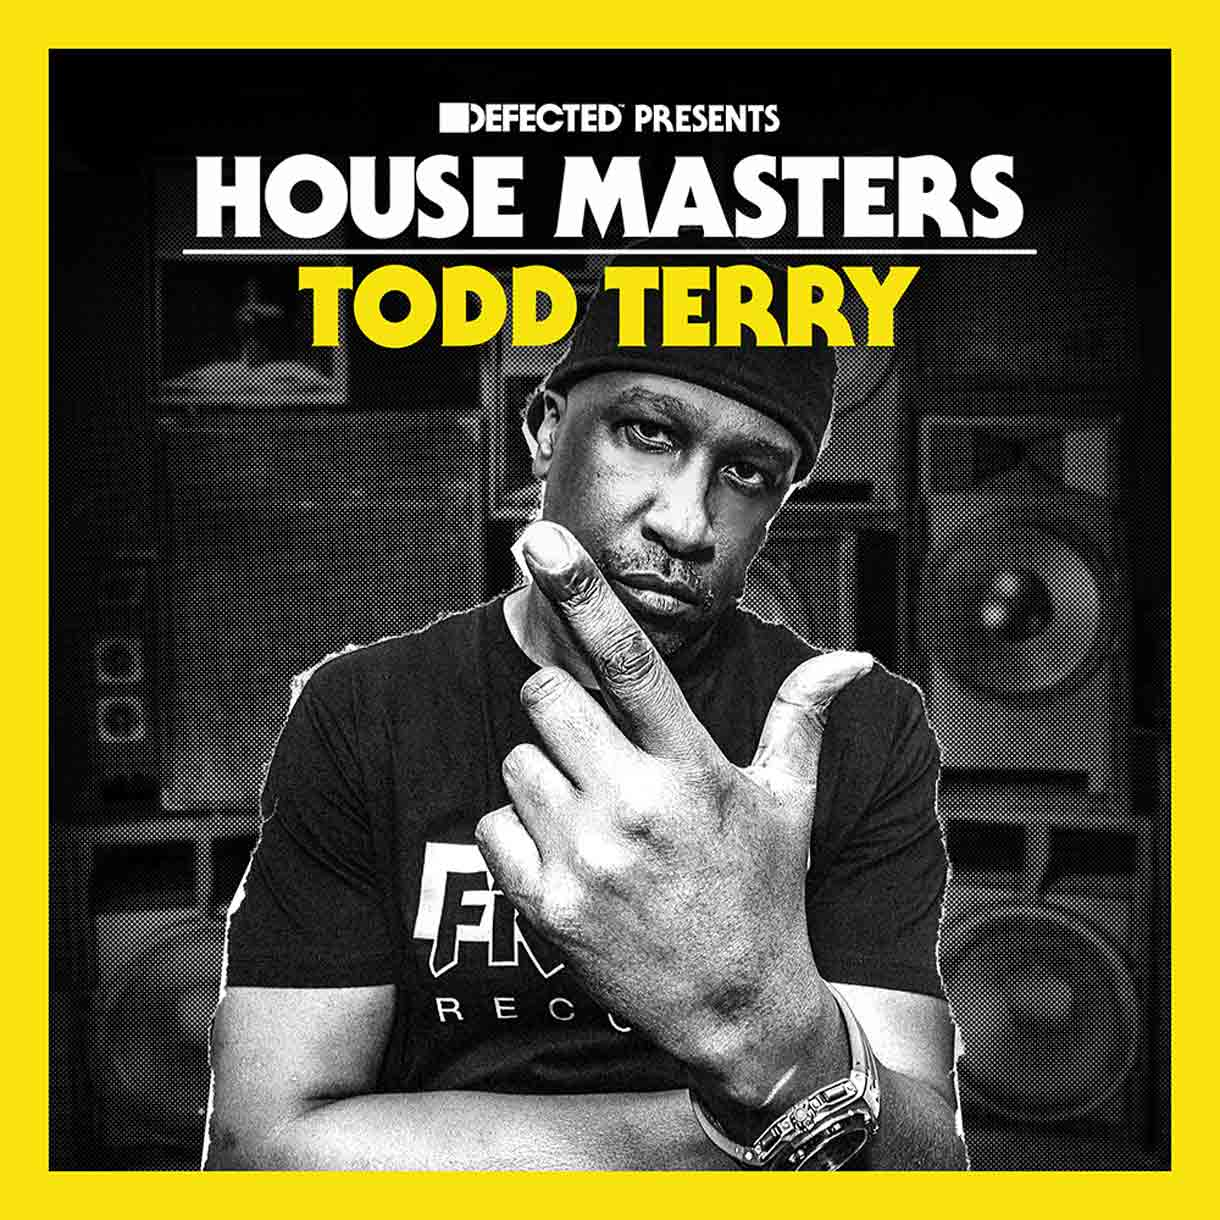 TODD TERRY house masters